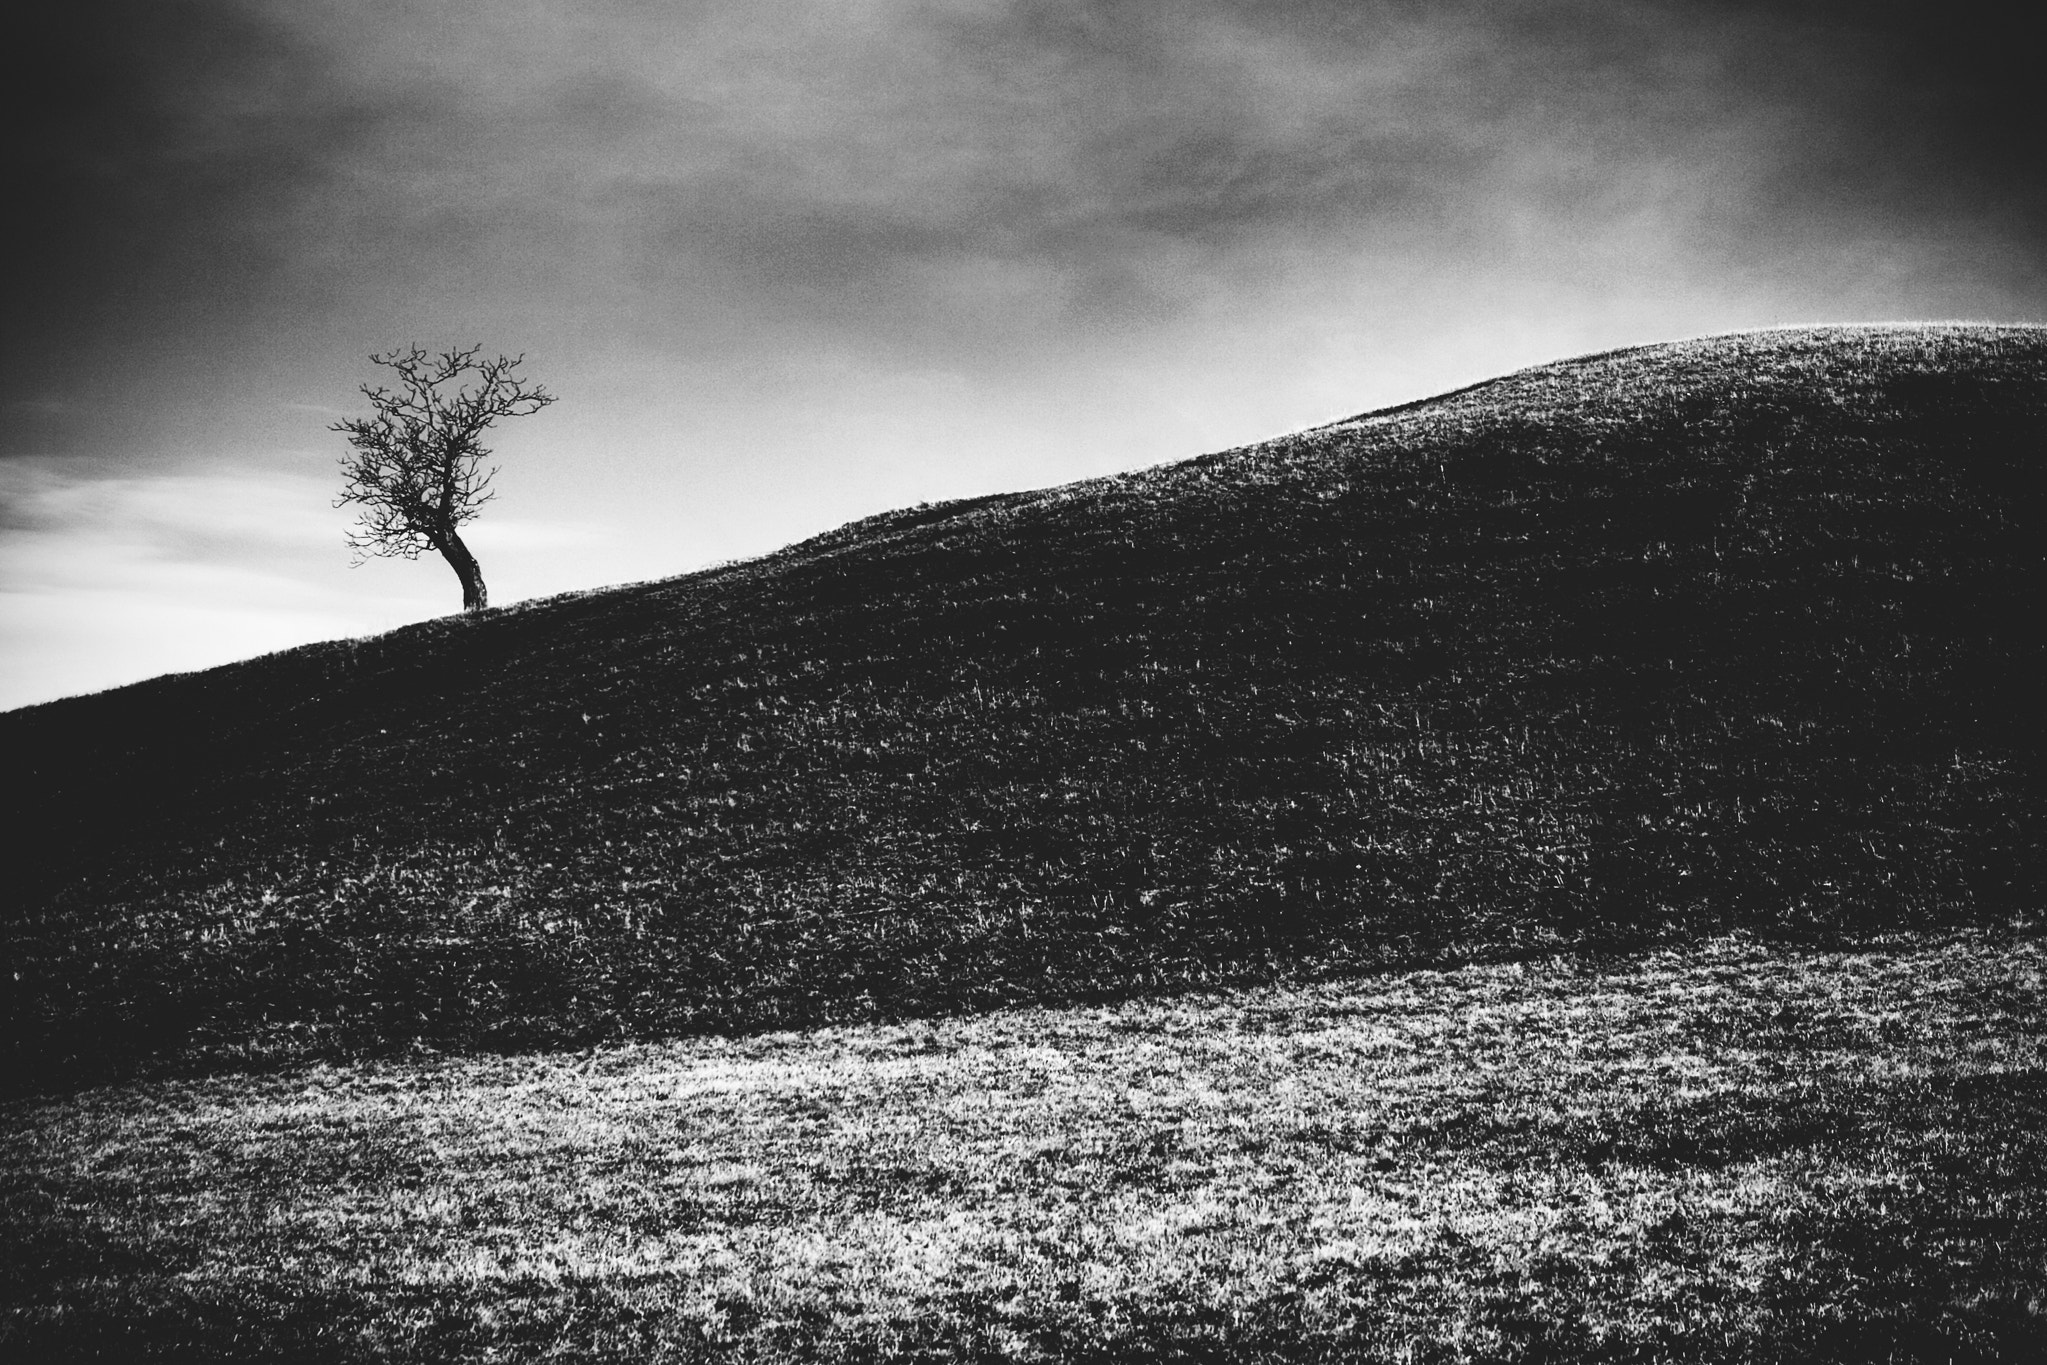 Photograph paysage.monochrome. by Steffen Walther on 500px